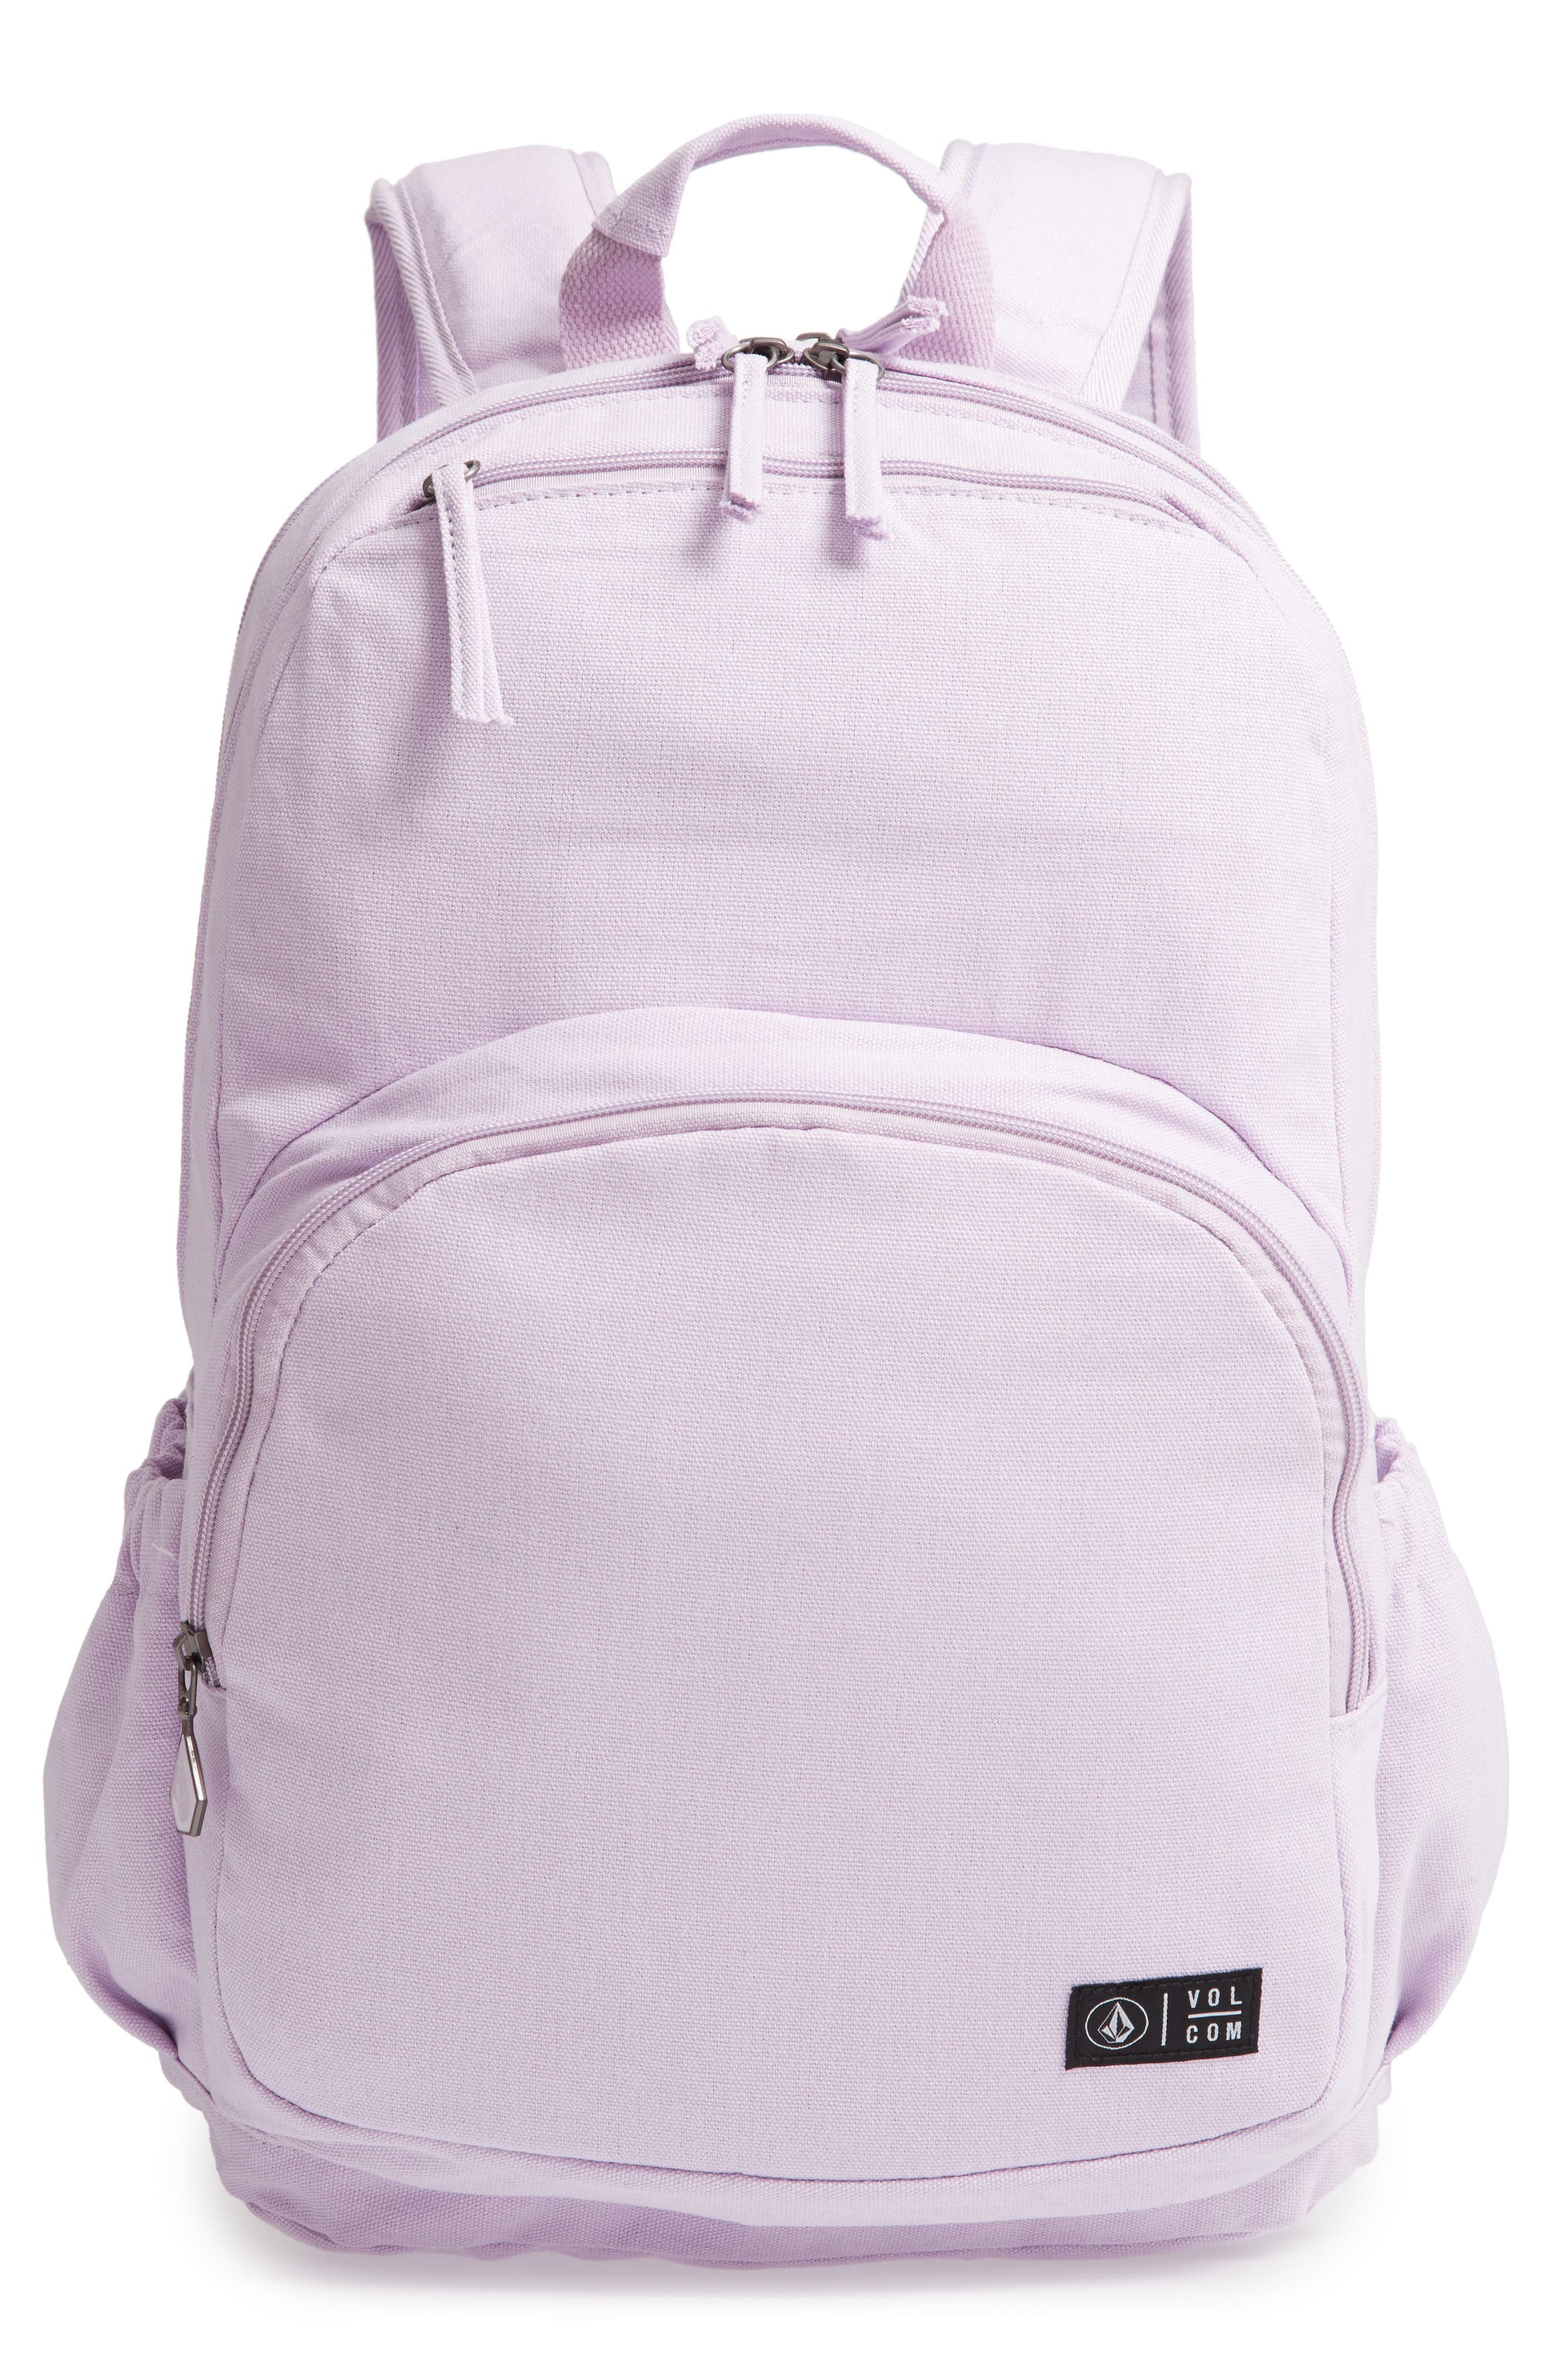 Field Trip Canvas Backpack,                         Main,                         color, 500